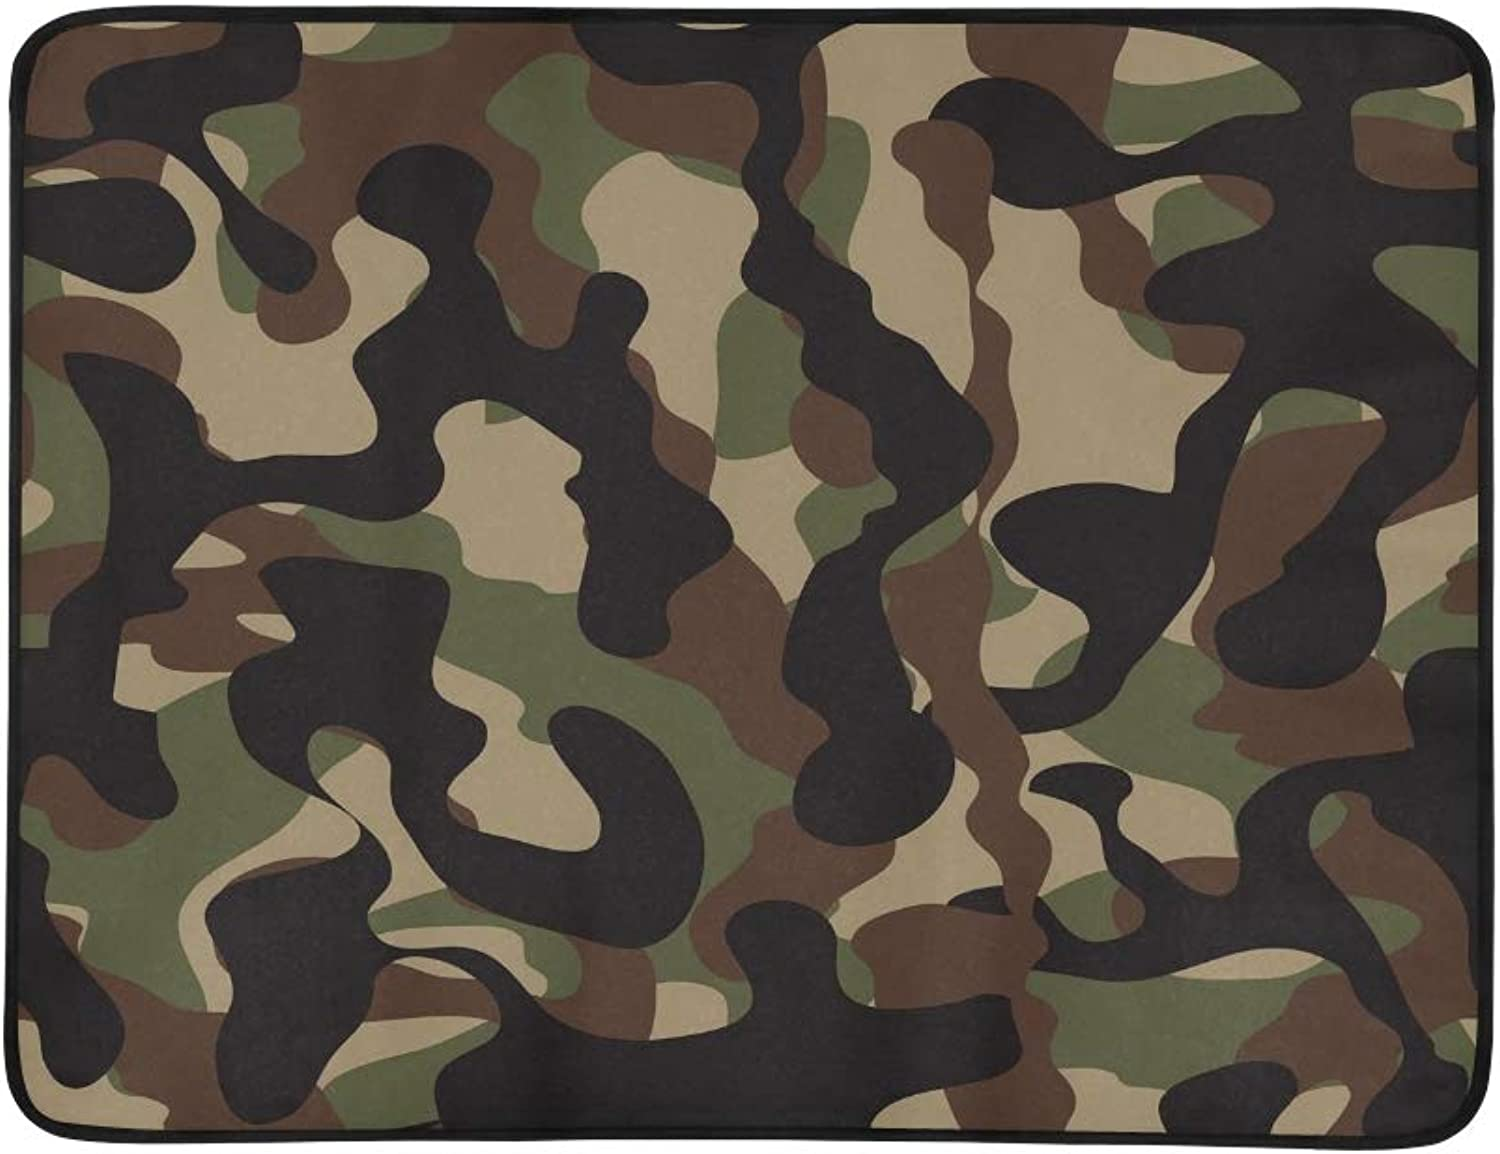 Camouflage Military Portable and Foldable Blanket Mat 60x78 Inch Handy Mat for Camping Picnic Beach Indoor Outdoor Travel